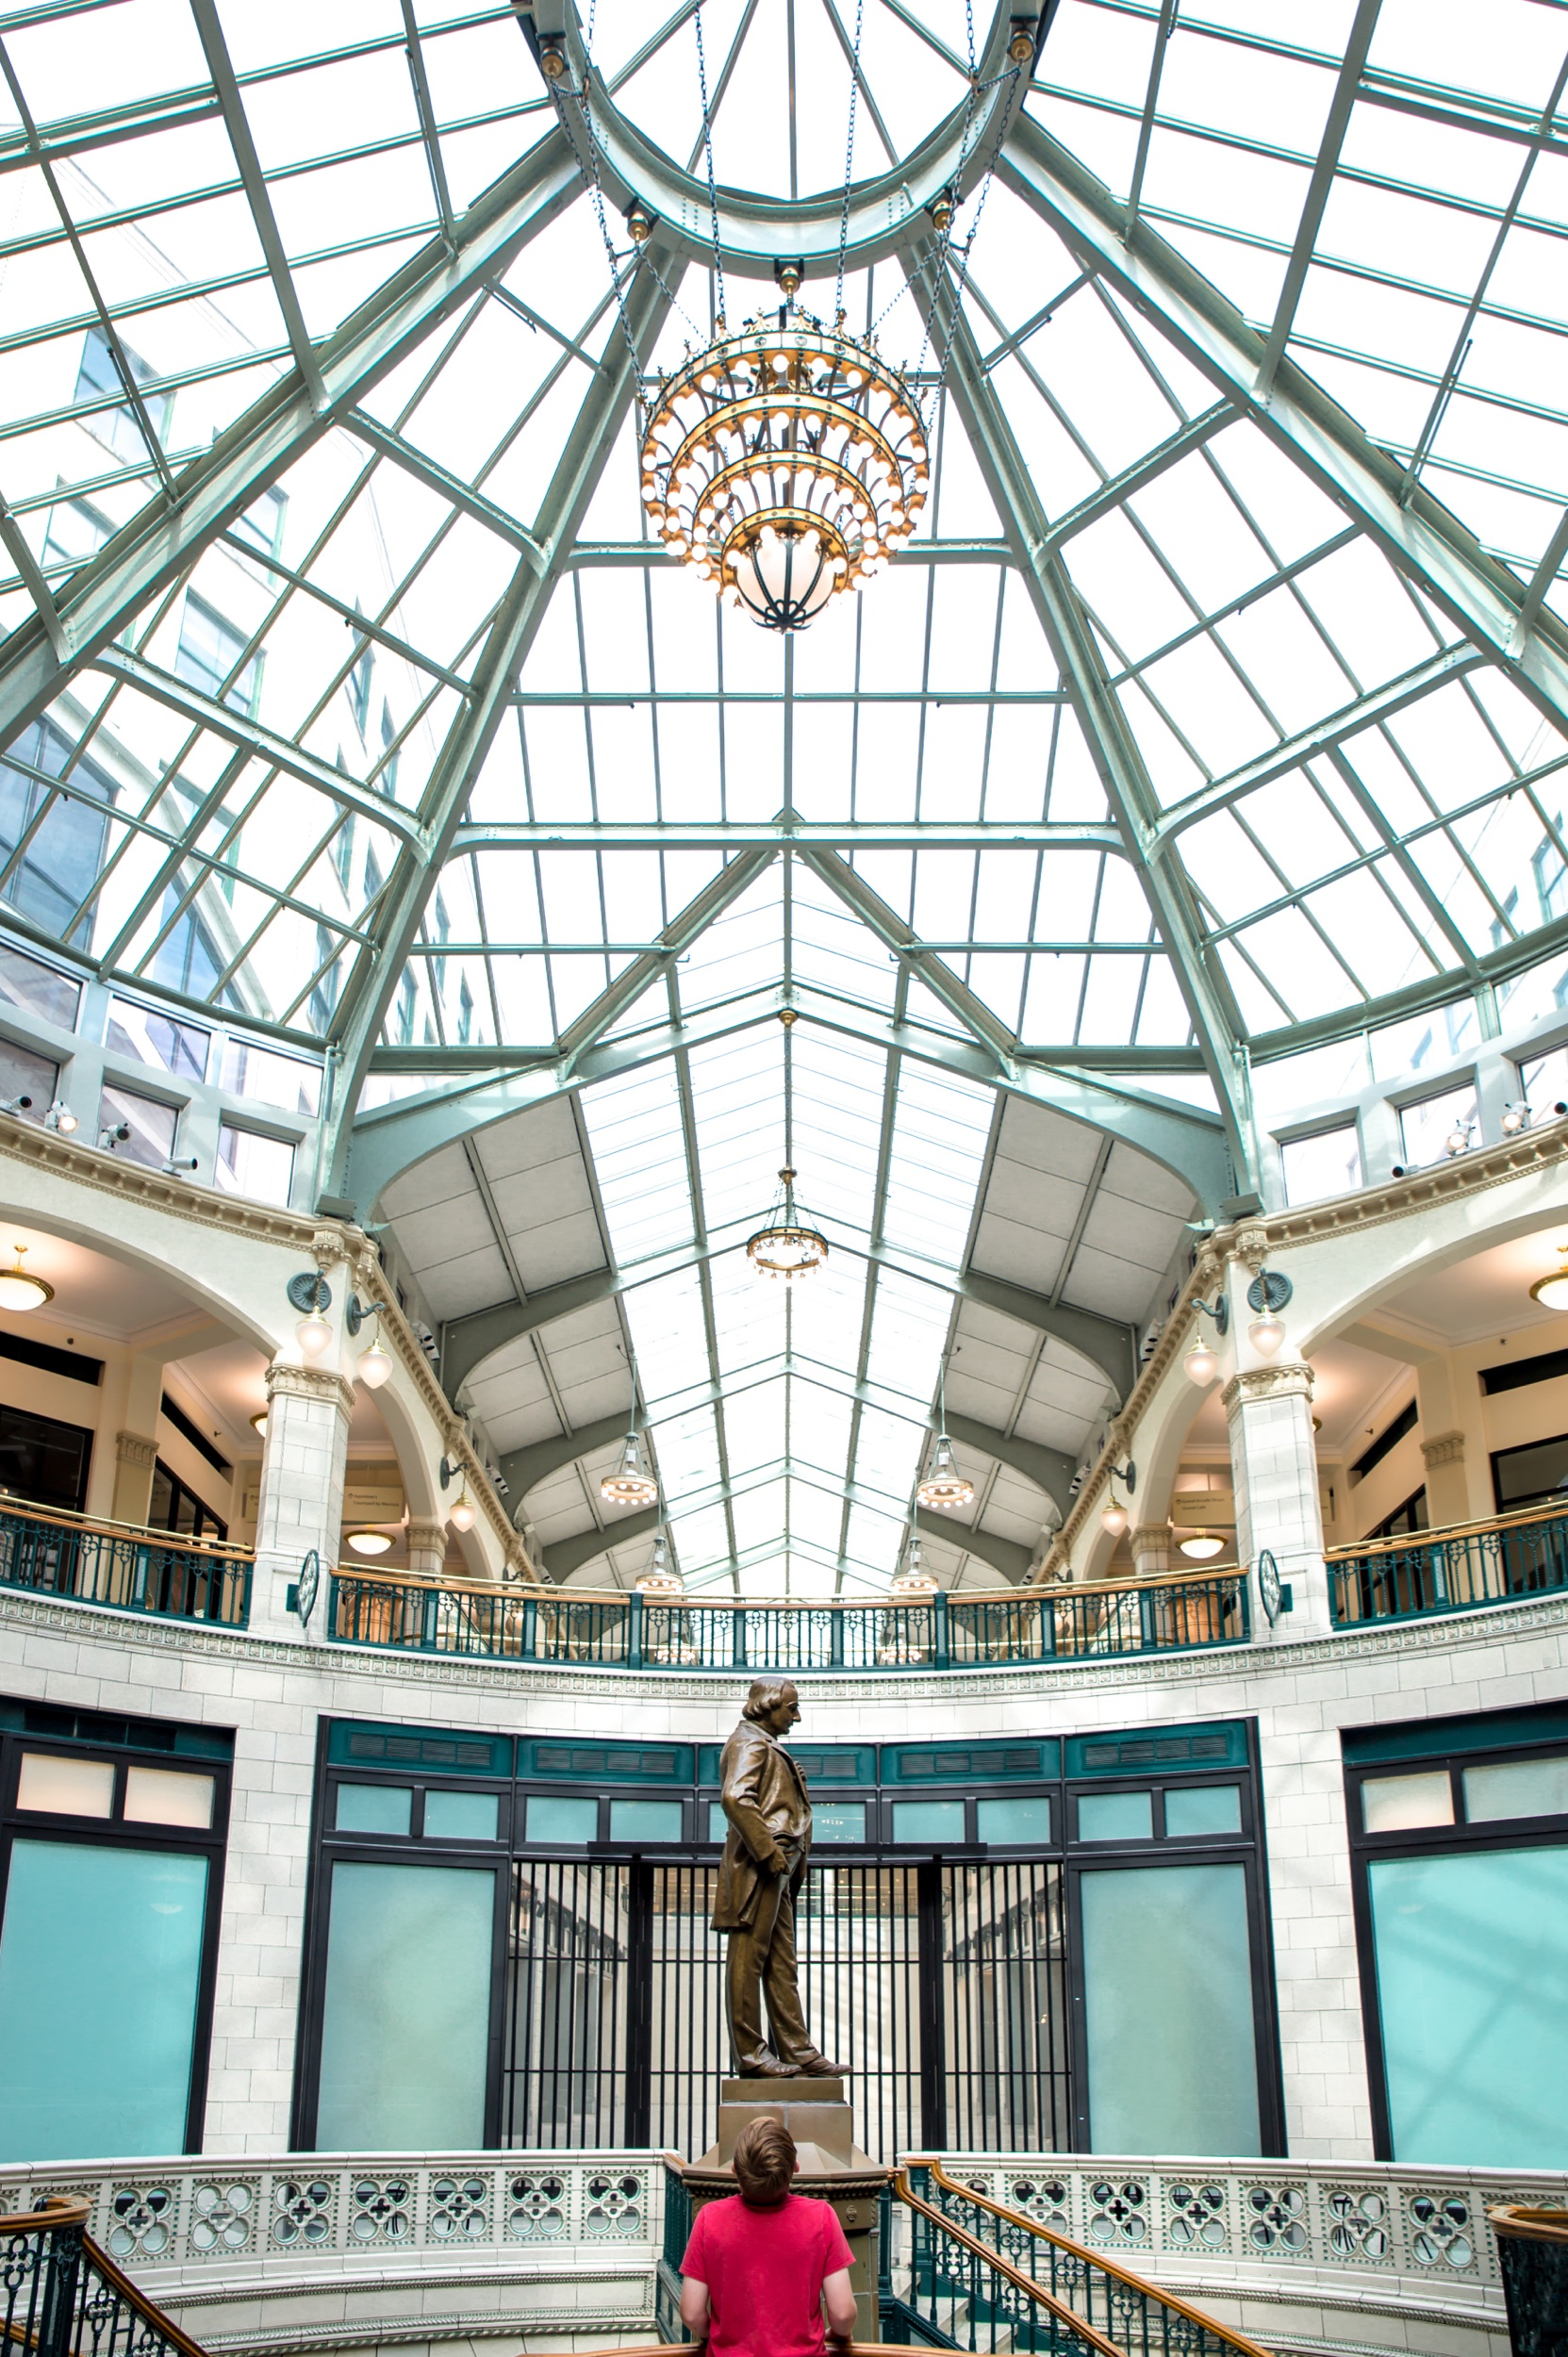 Popped in to the Old Grande Avenue Indoor Mall